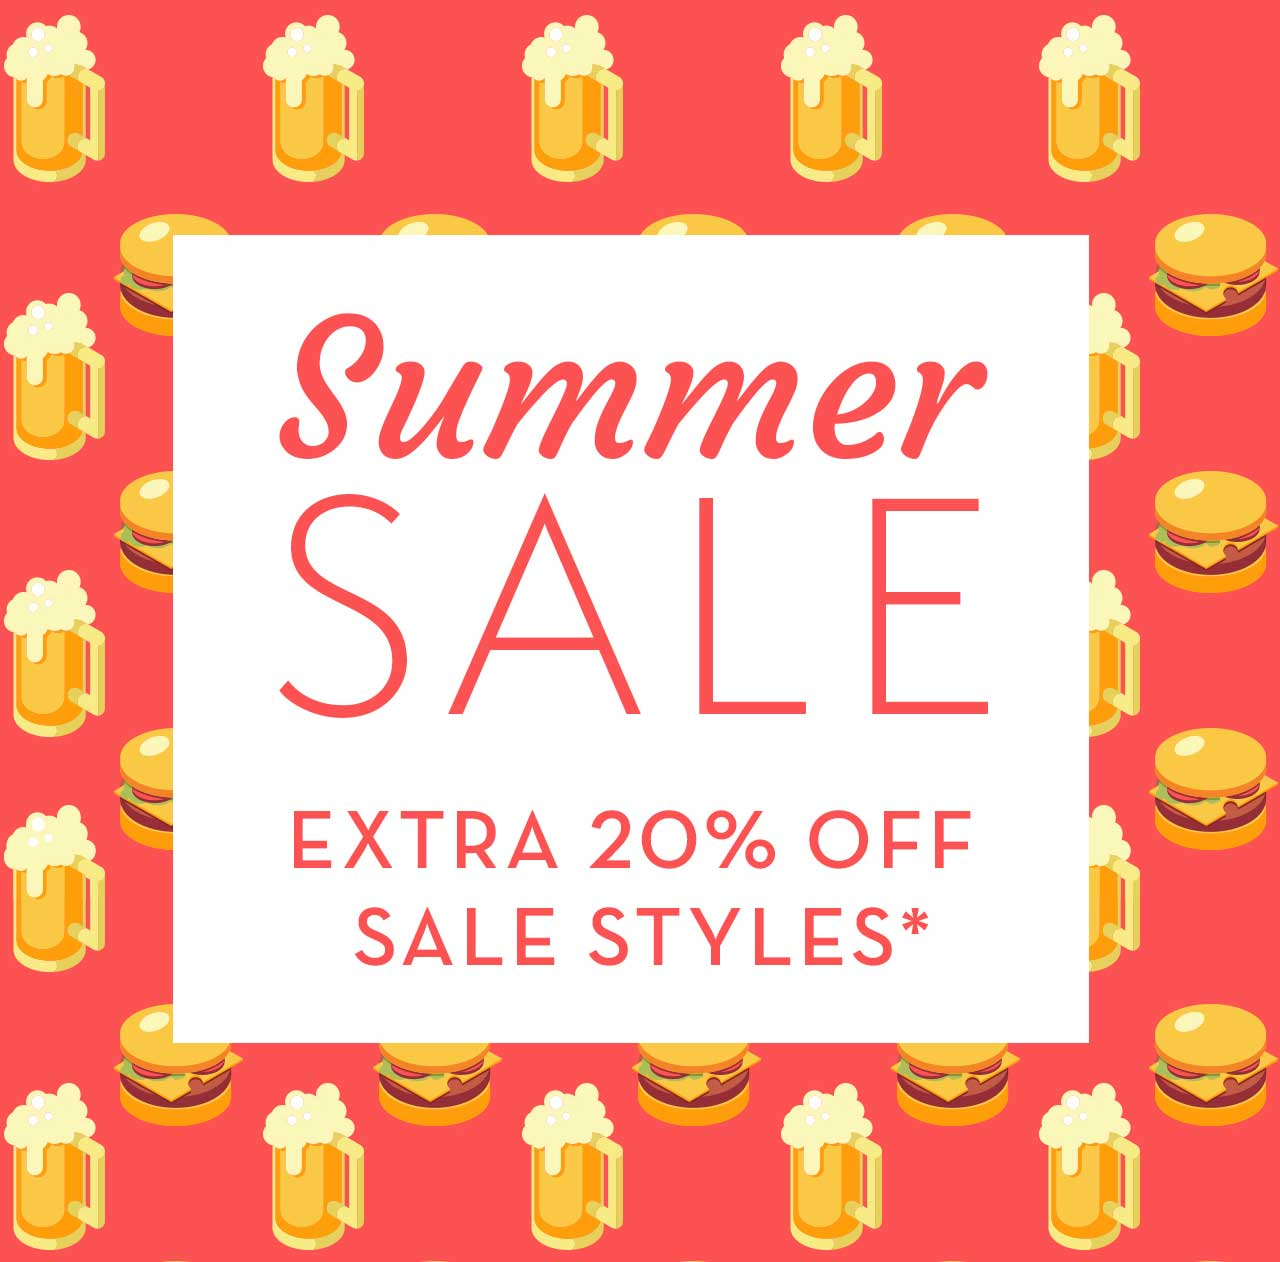 Summer Sale Extra 20% Off Sale Styles*